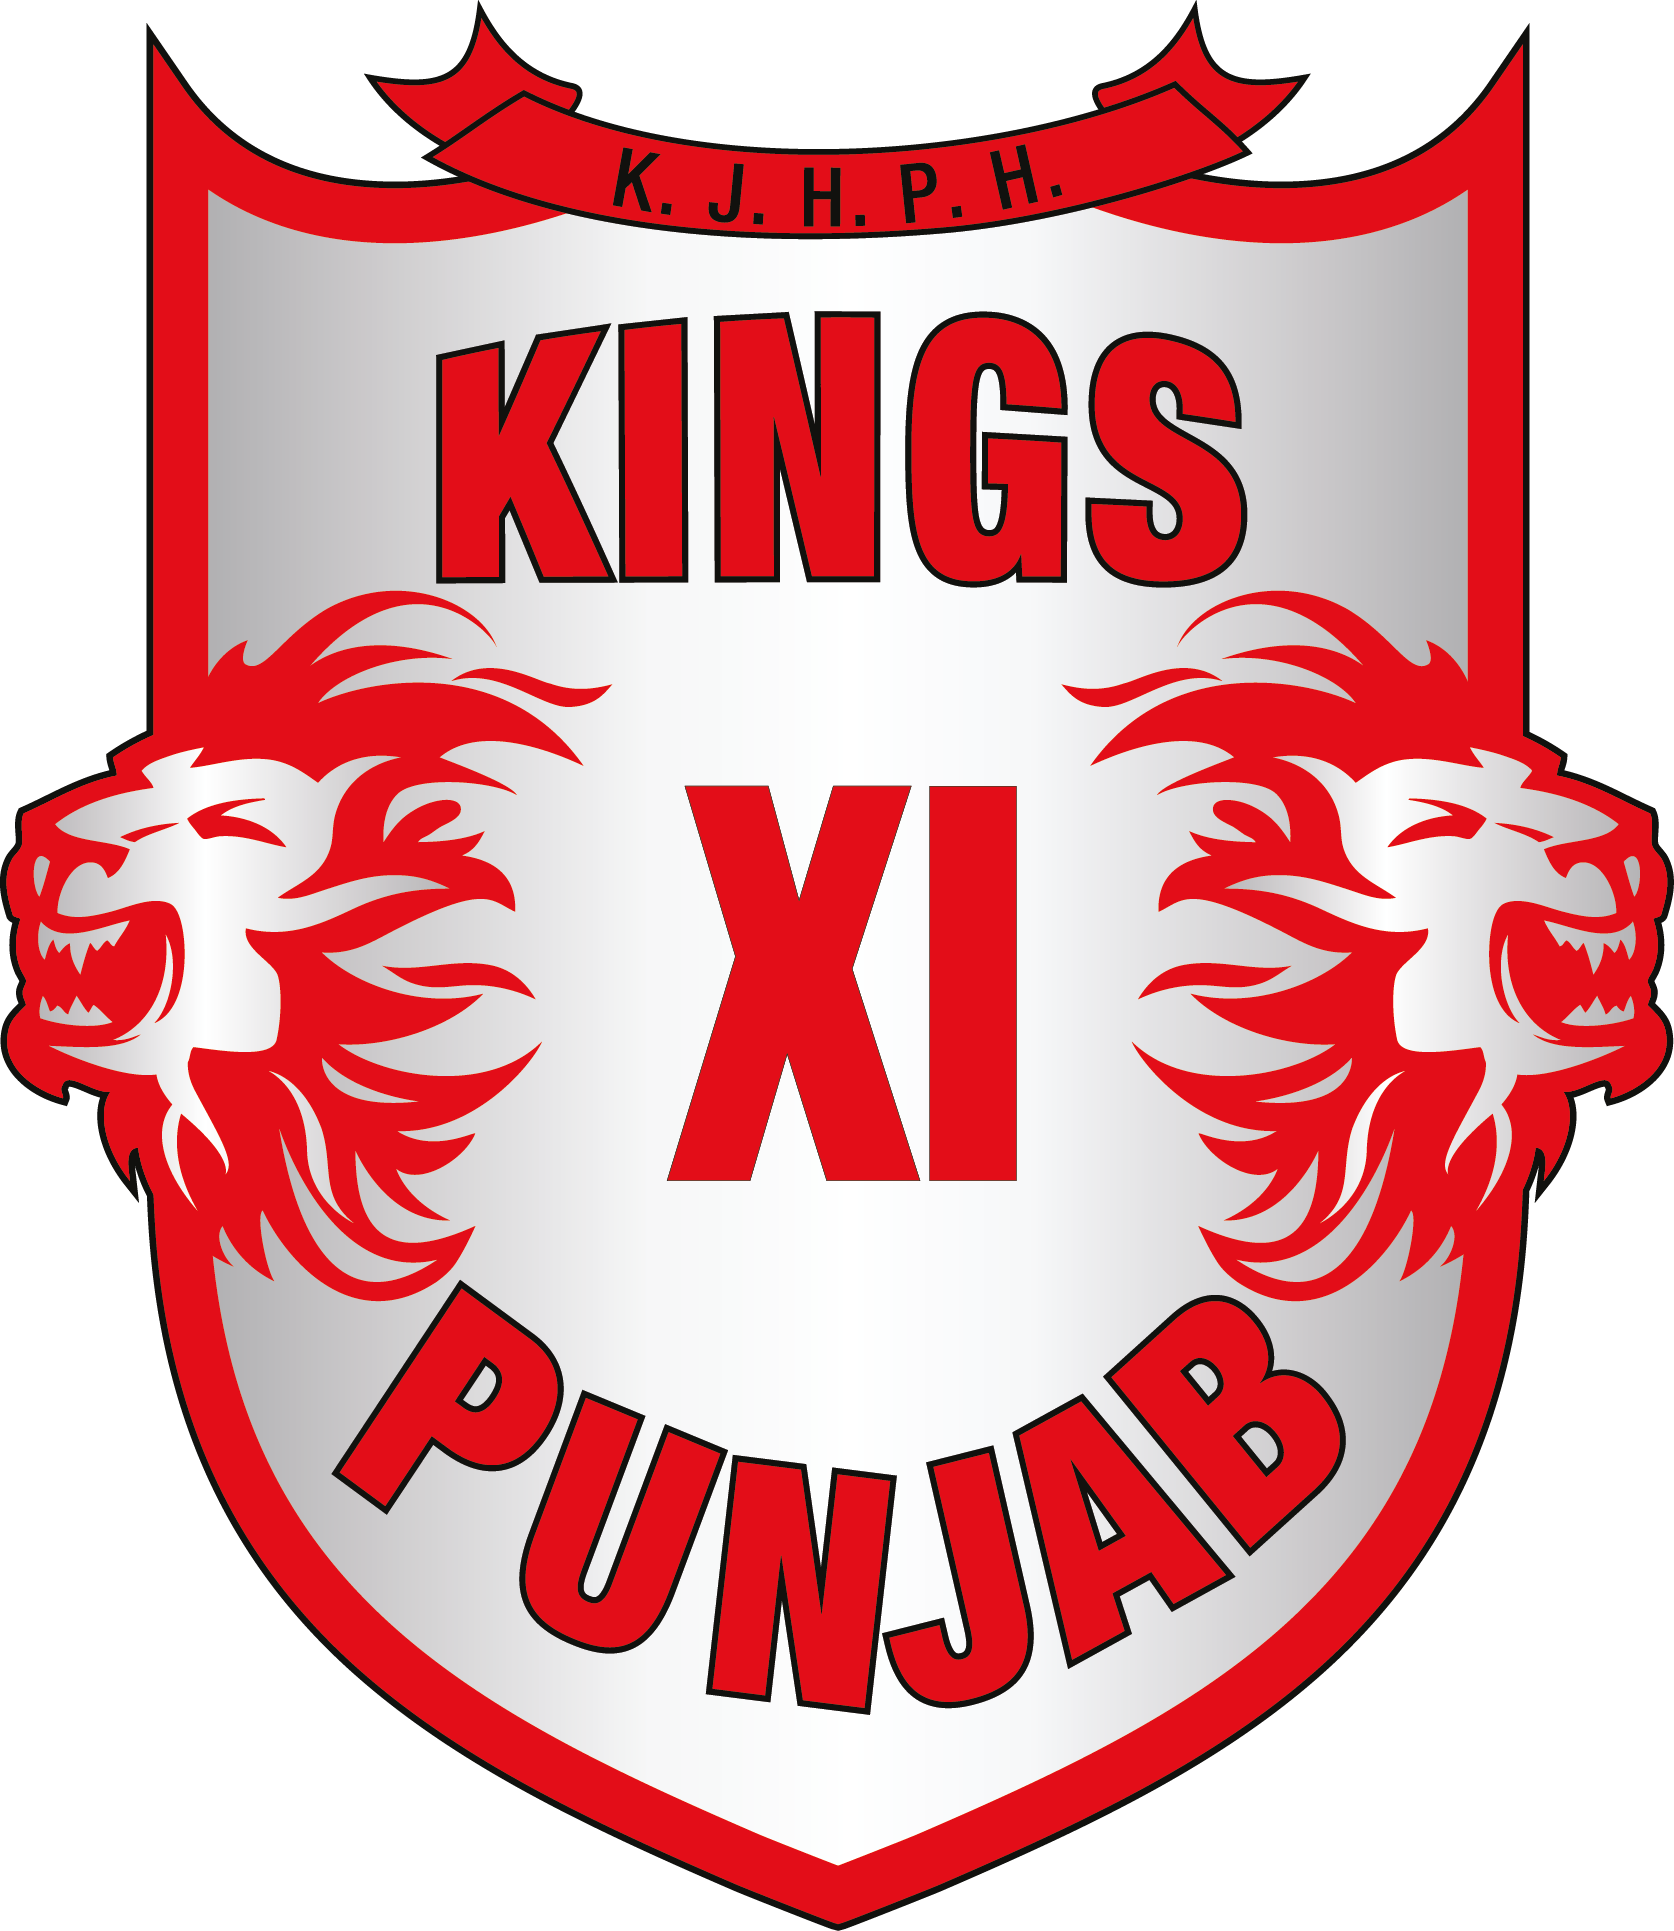 Kings XI Punjab Logo [kxip.in] Download Vector Kolkata